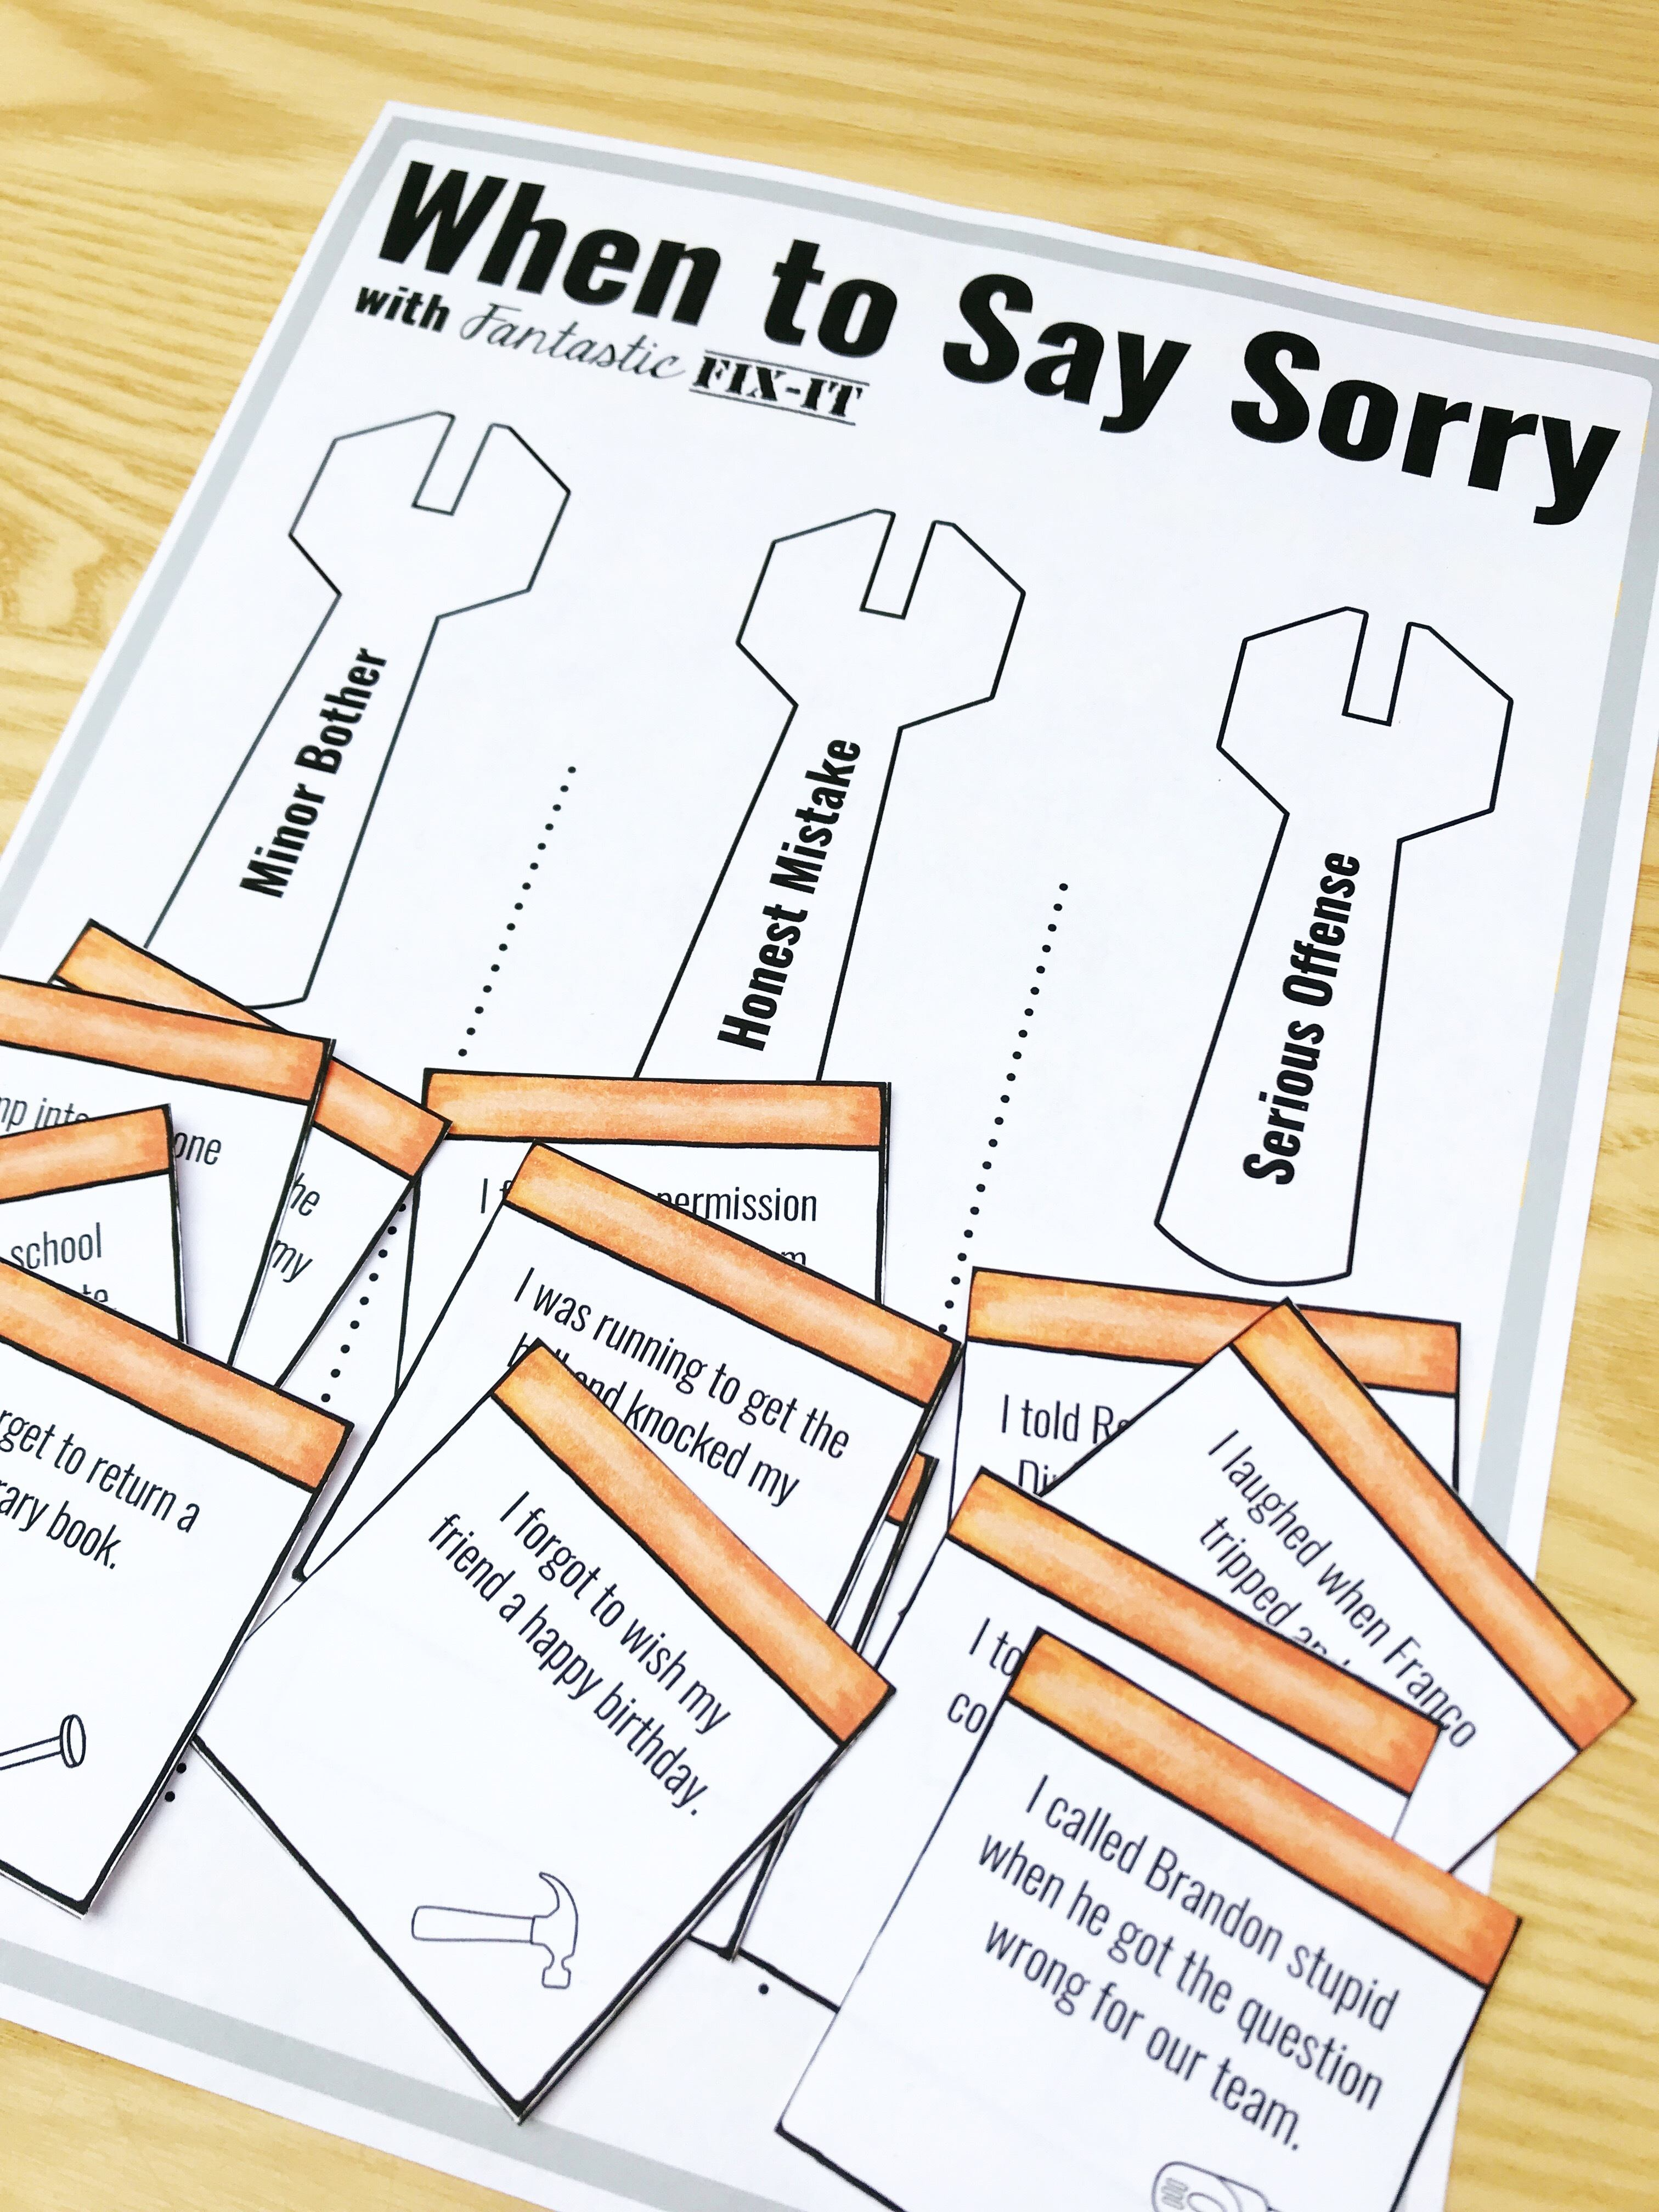 When to say sorry counseling activity